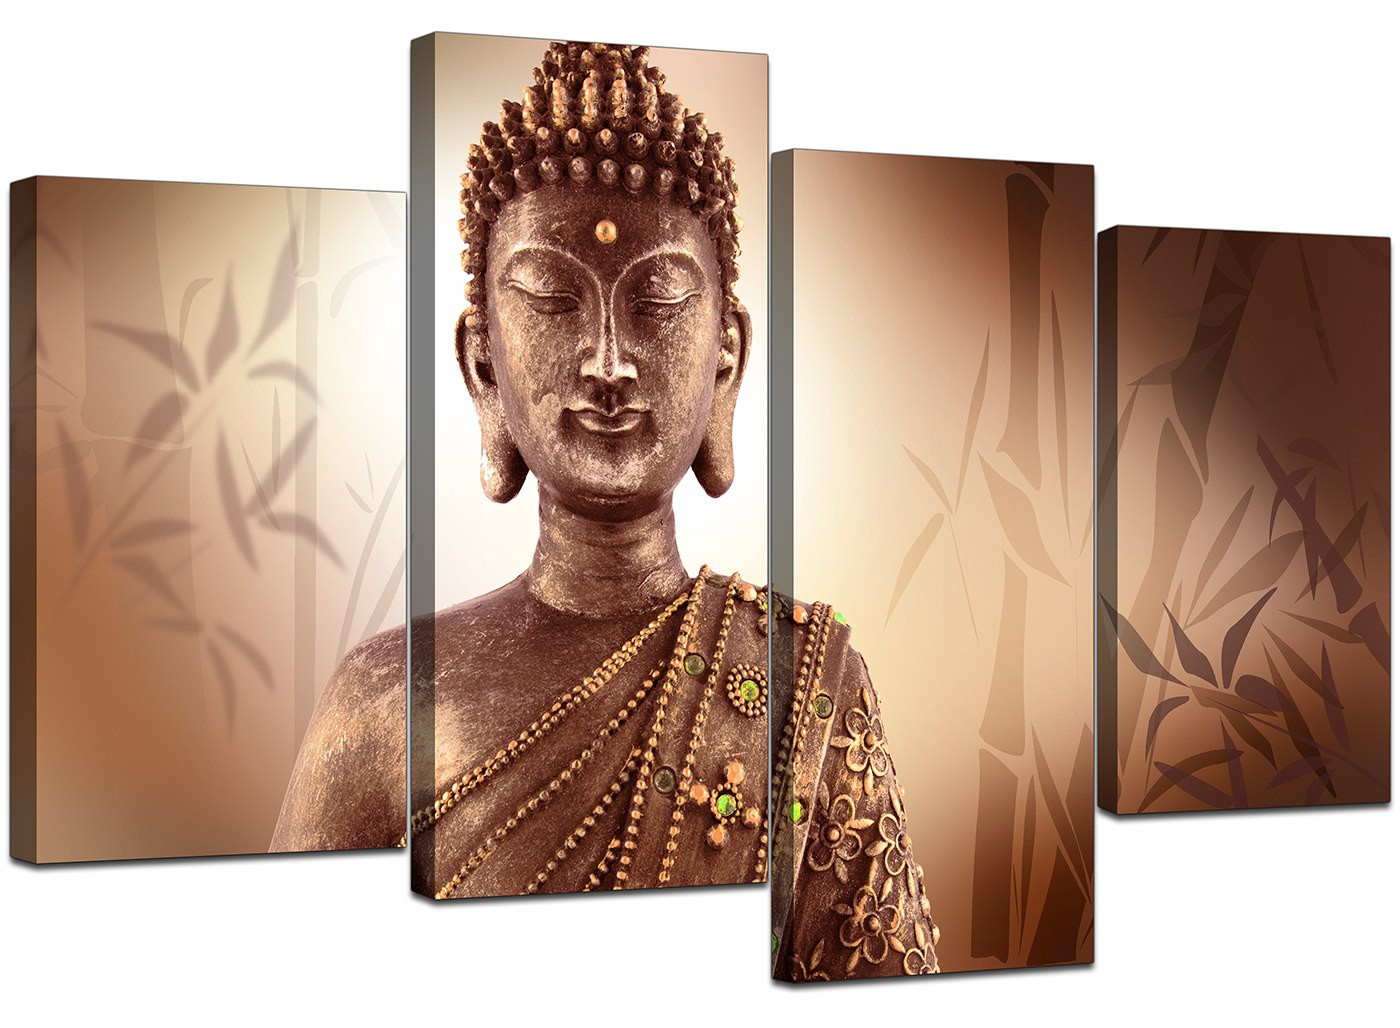 Canvas Wall Art Of Buddha In Brown For Your Hallway